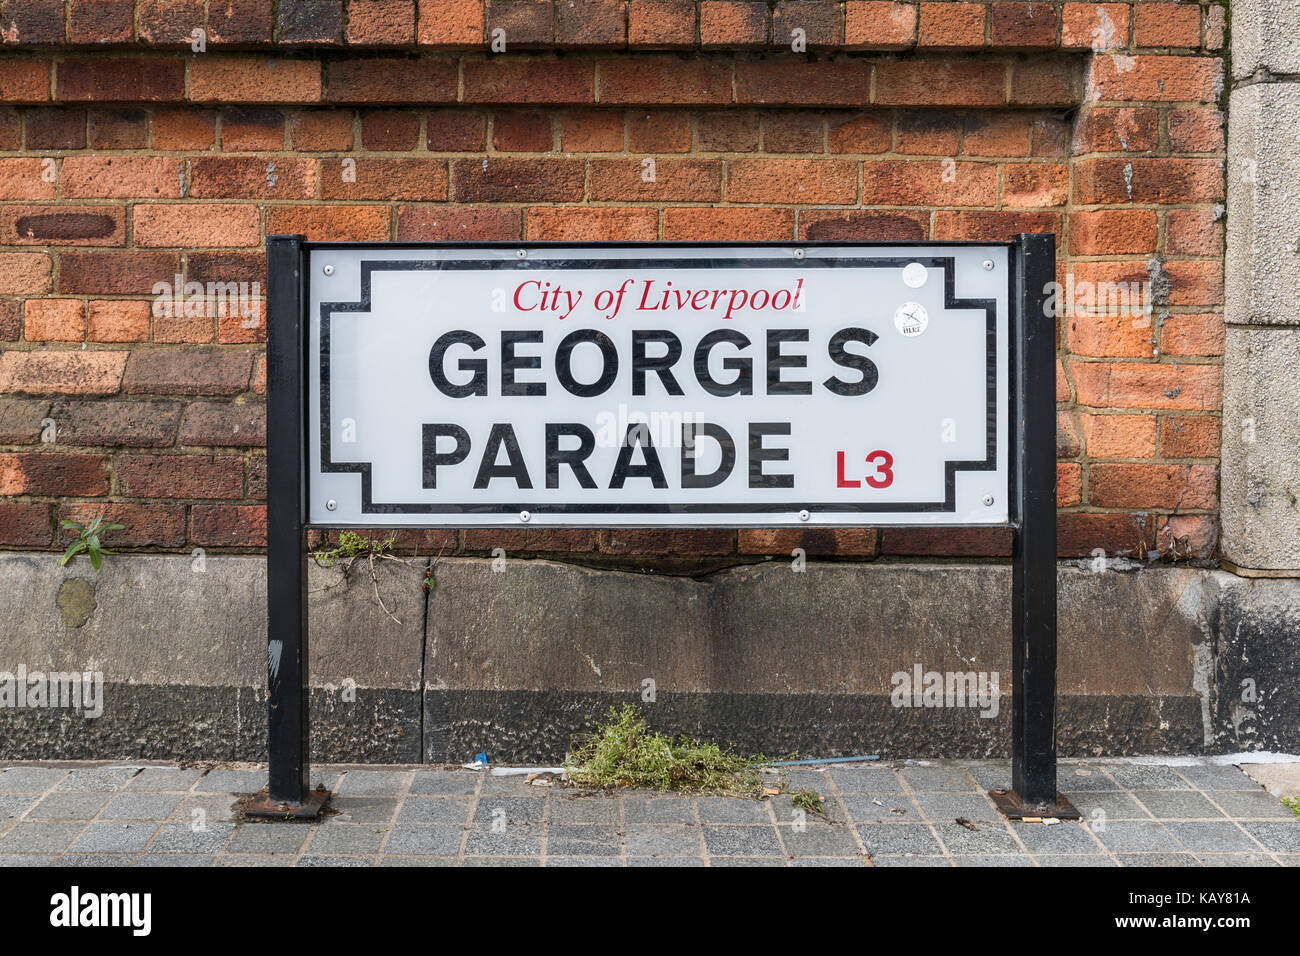 George's Parade L3 street sign, Liverpool, UK - Stock Image